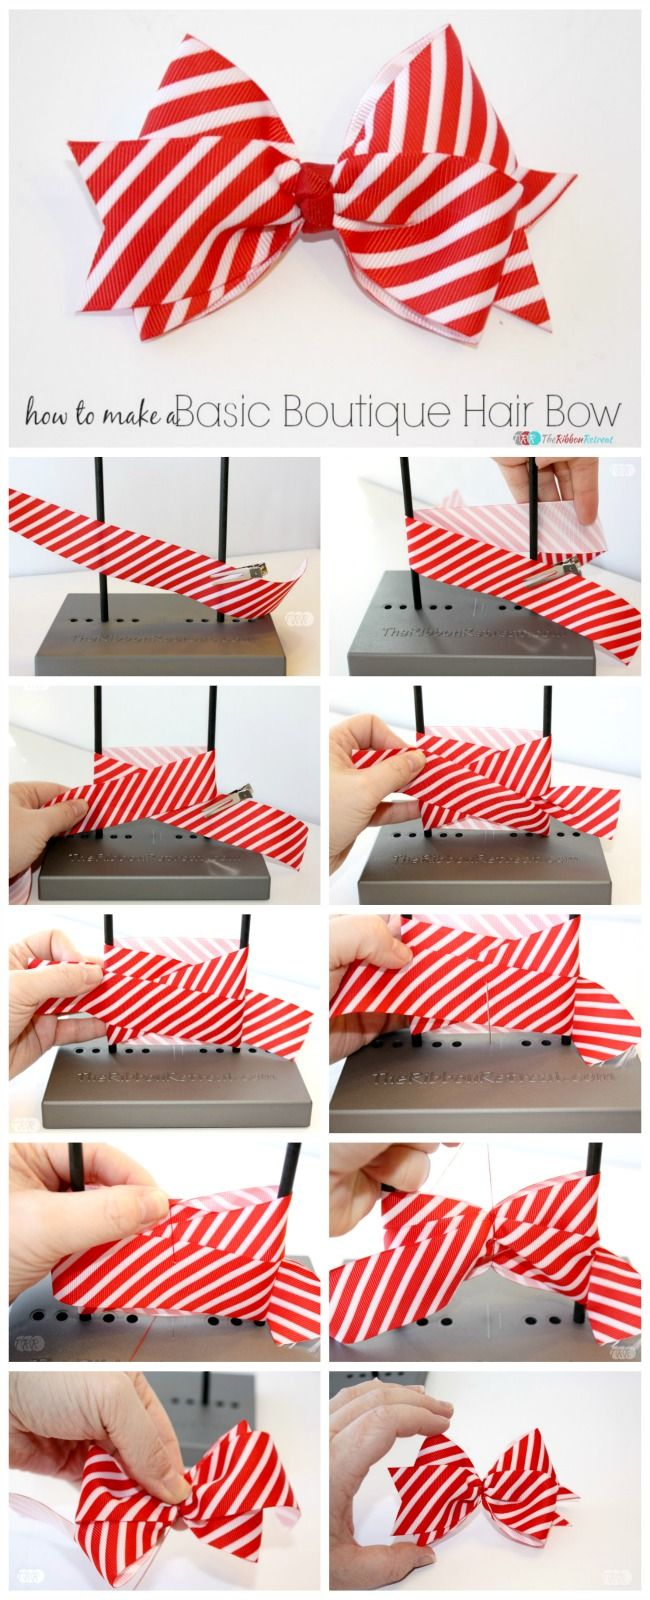 how to make a basic boutique hair bow the ribbon retreat blog